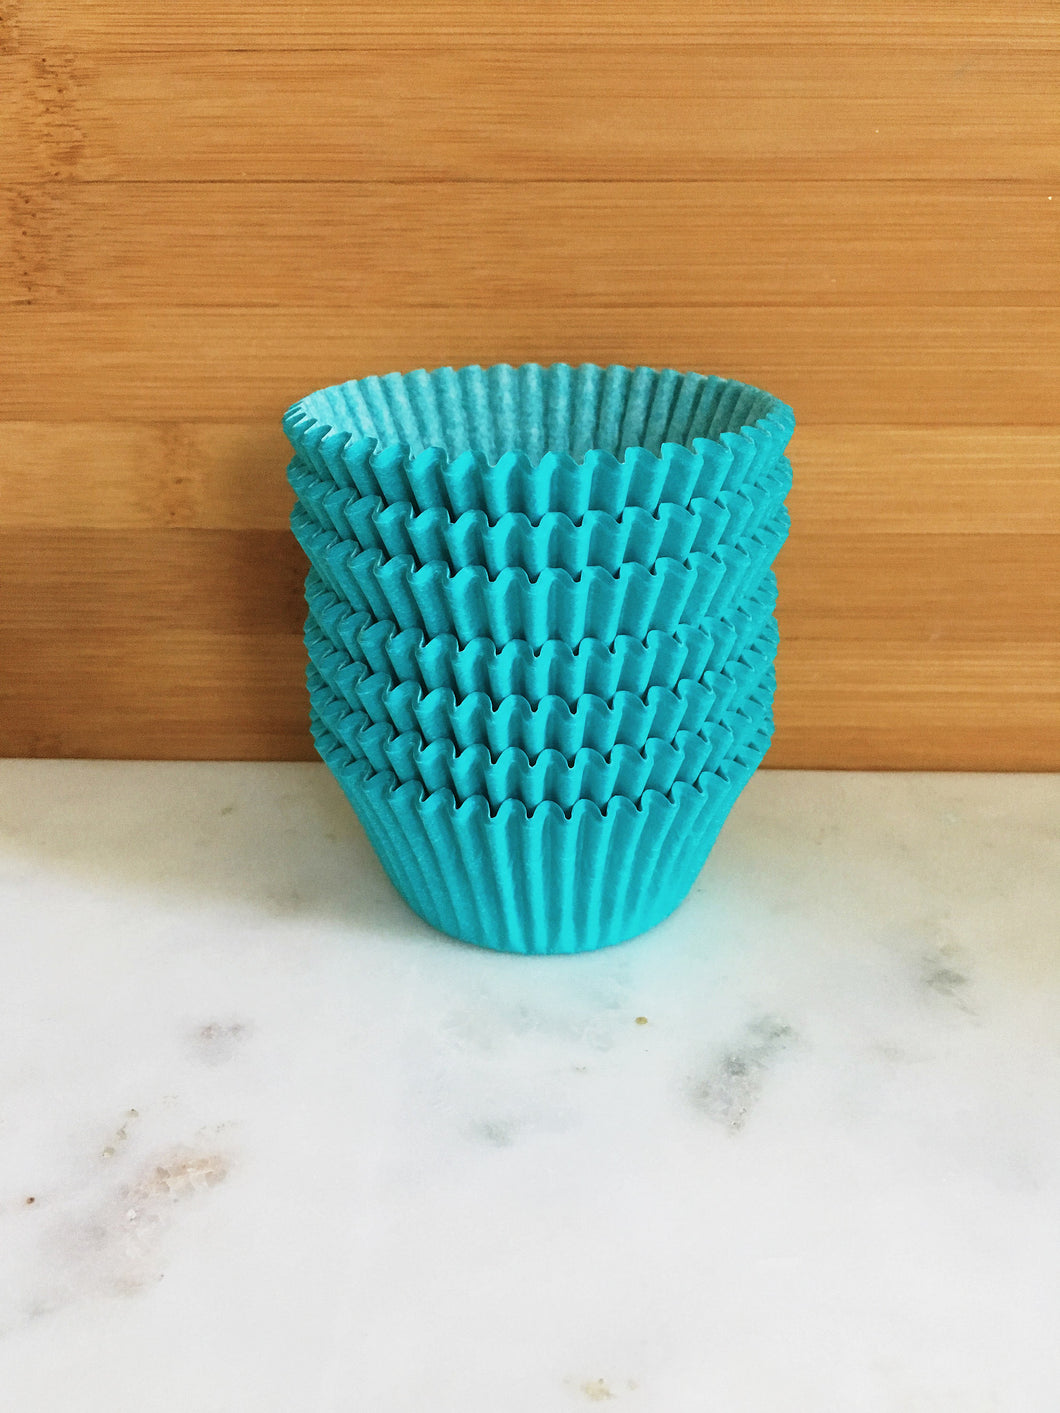 Teal Cupcake Liners, Standard Sized, Baking Cups (50)